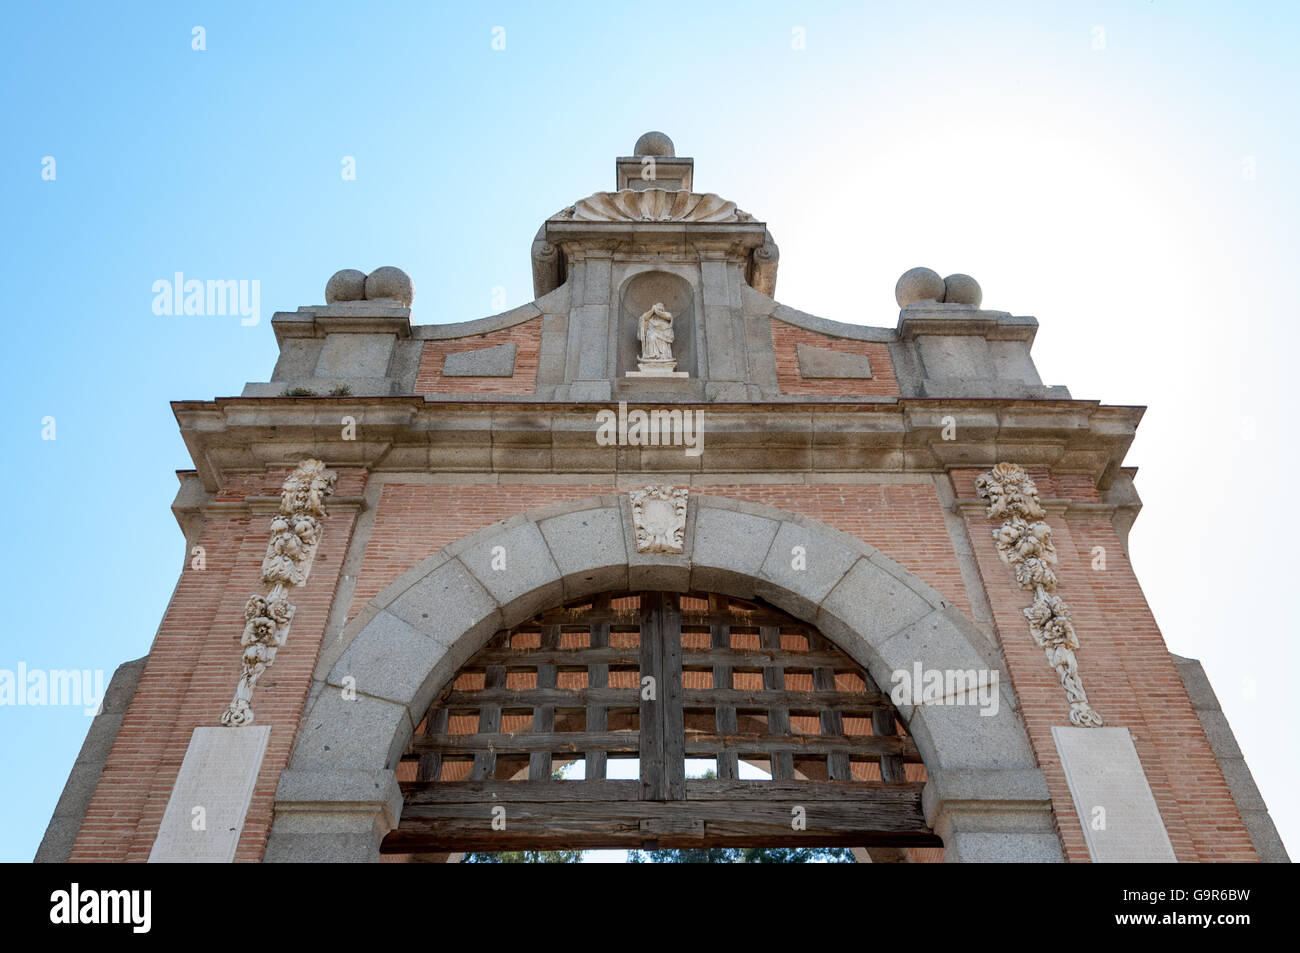 Puente de San Martín in Toledo Spain Europe - Stock Image